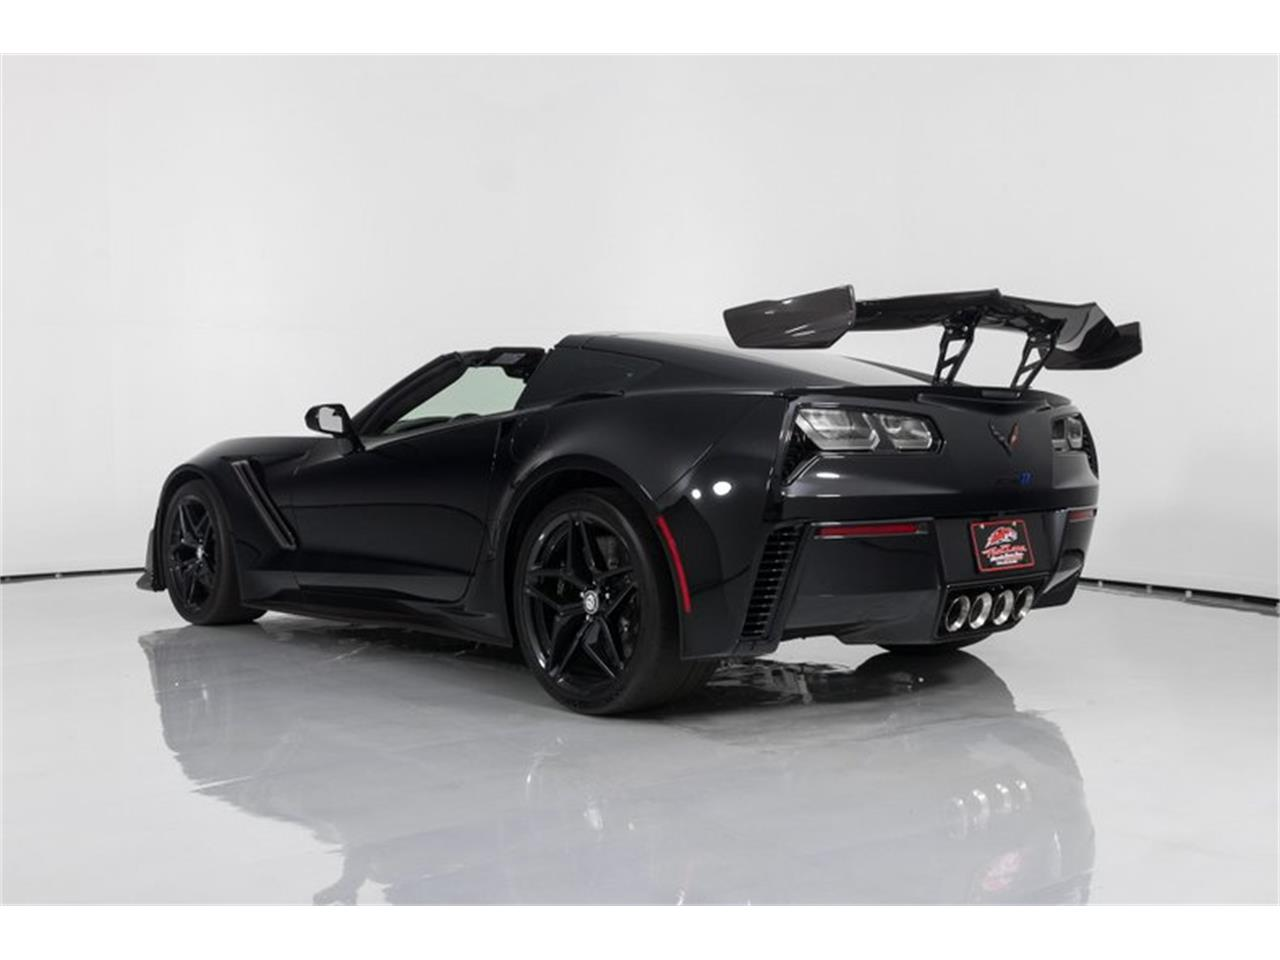 2019 Chevrolet Corvette ZR1 for sale in St. Charles, MO – photo 8